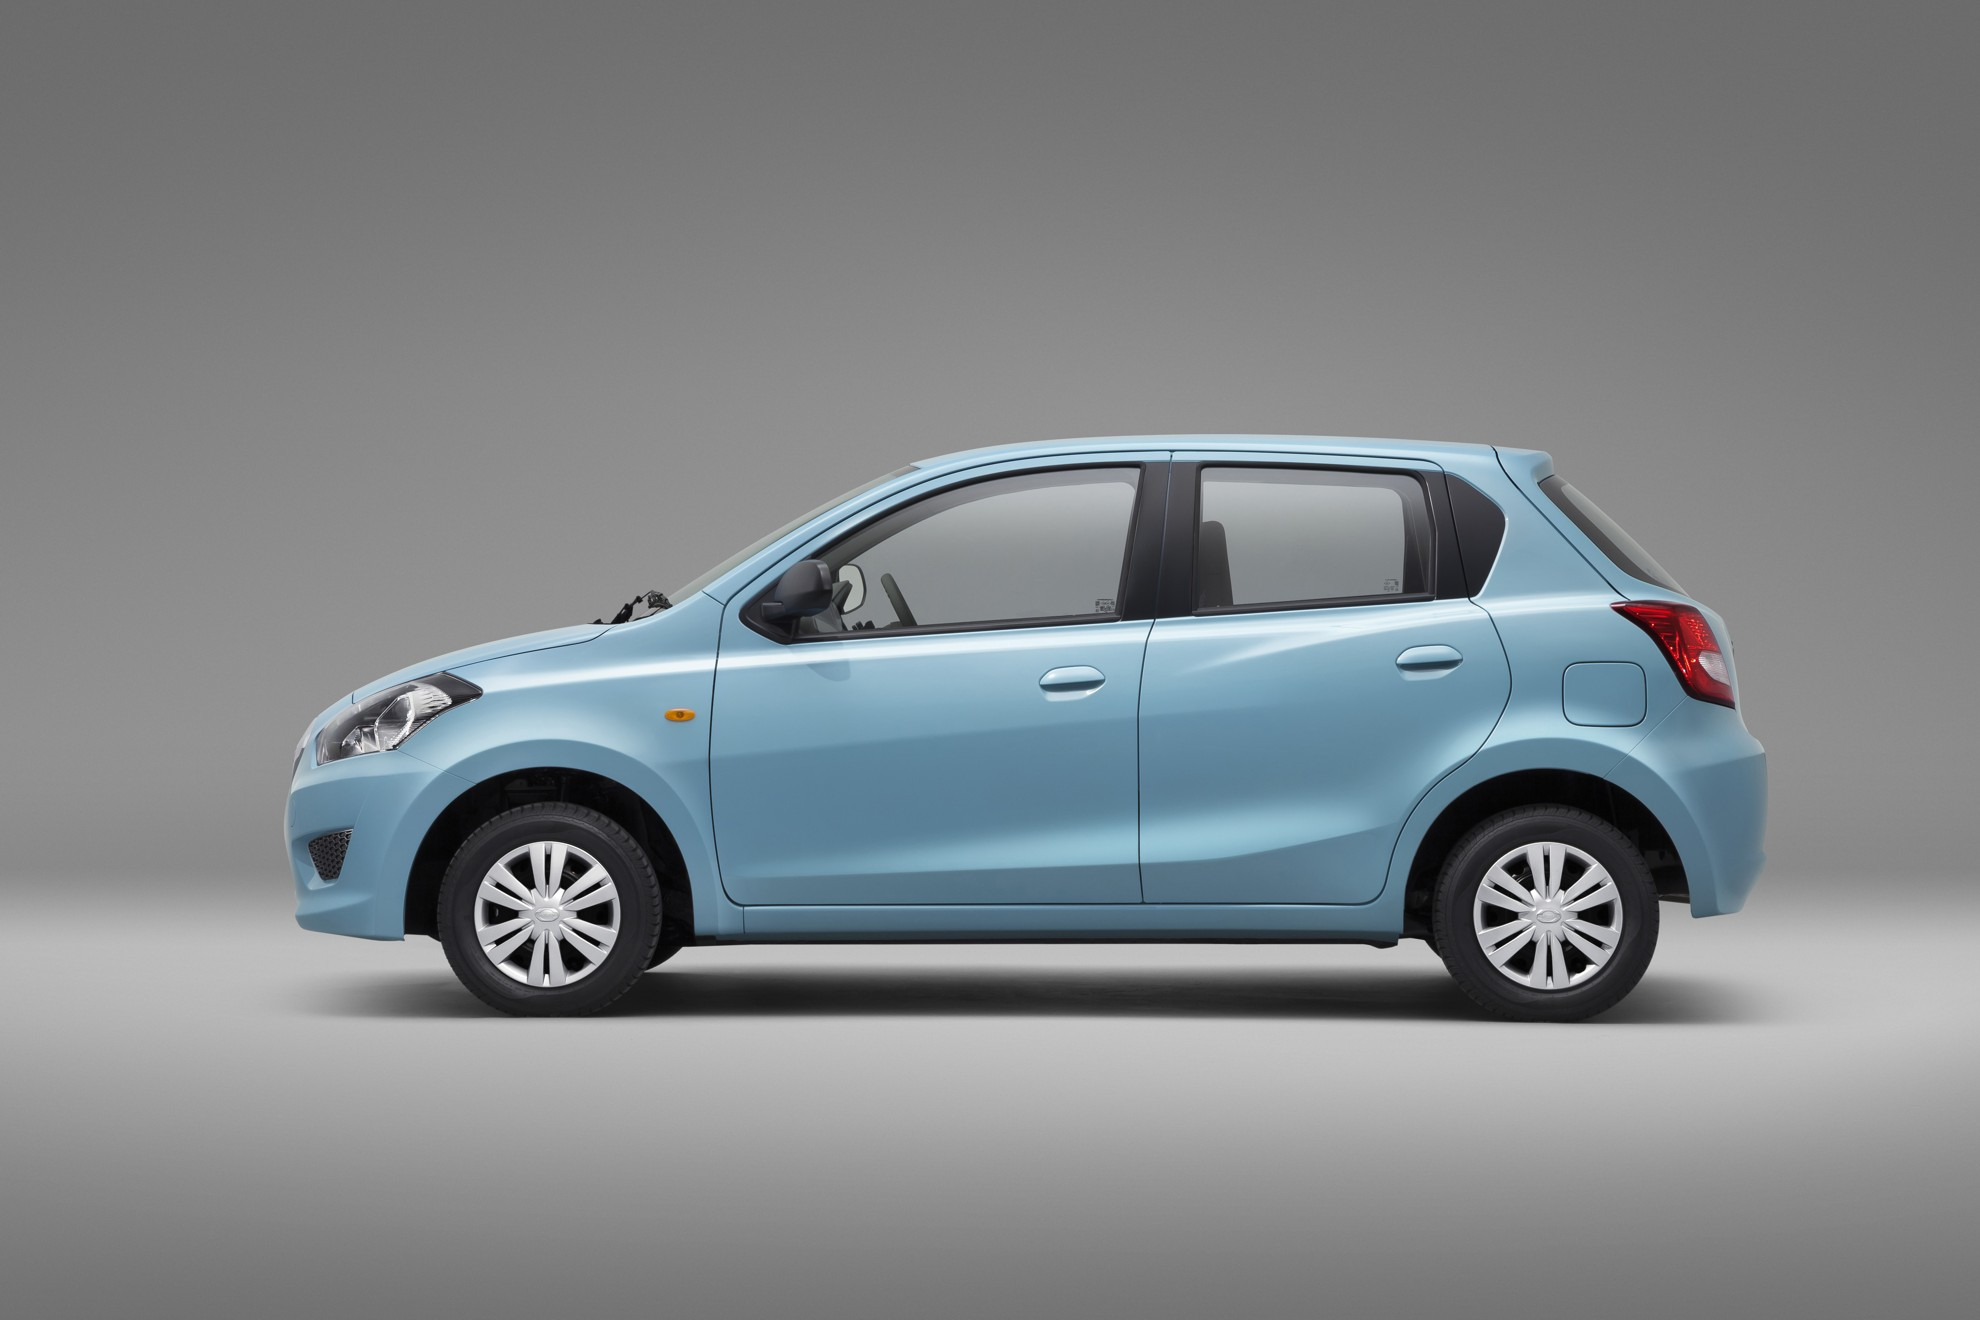 Datsun GO revealed in South Africa